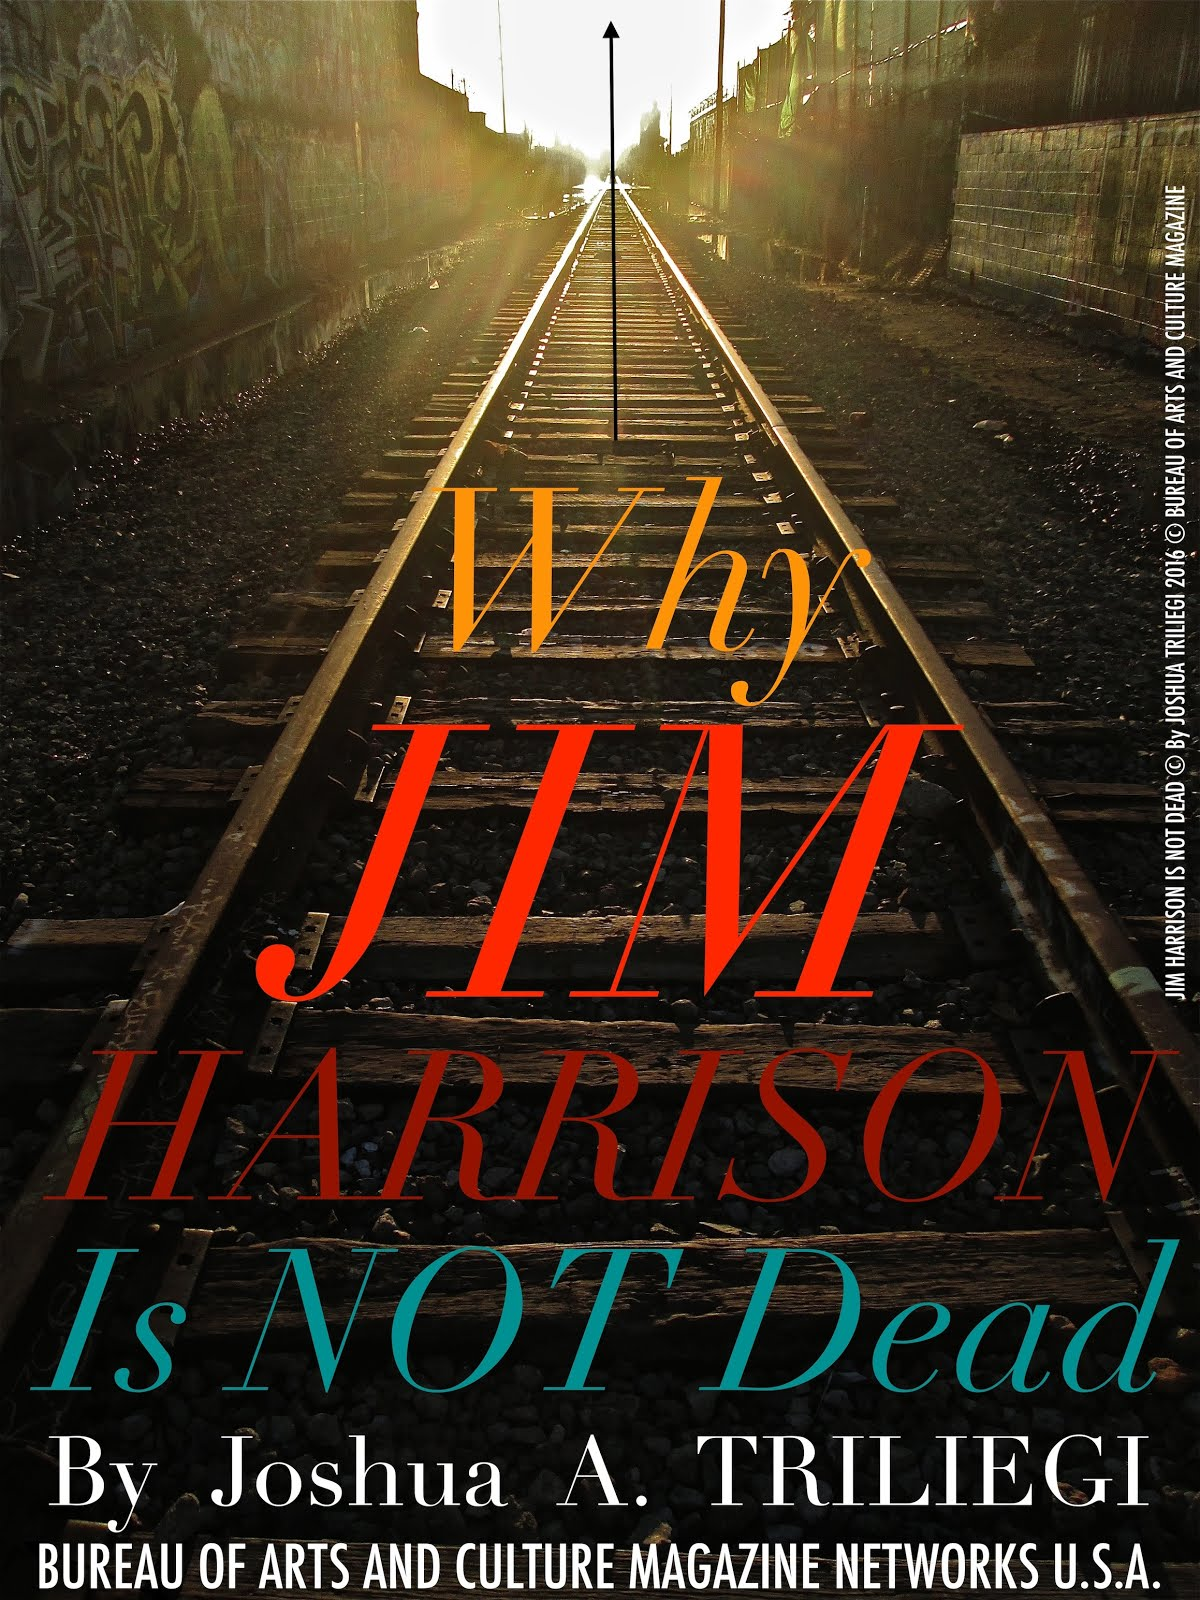 WHY JIM HARRISON IS NOT DEAD